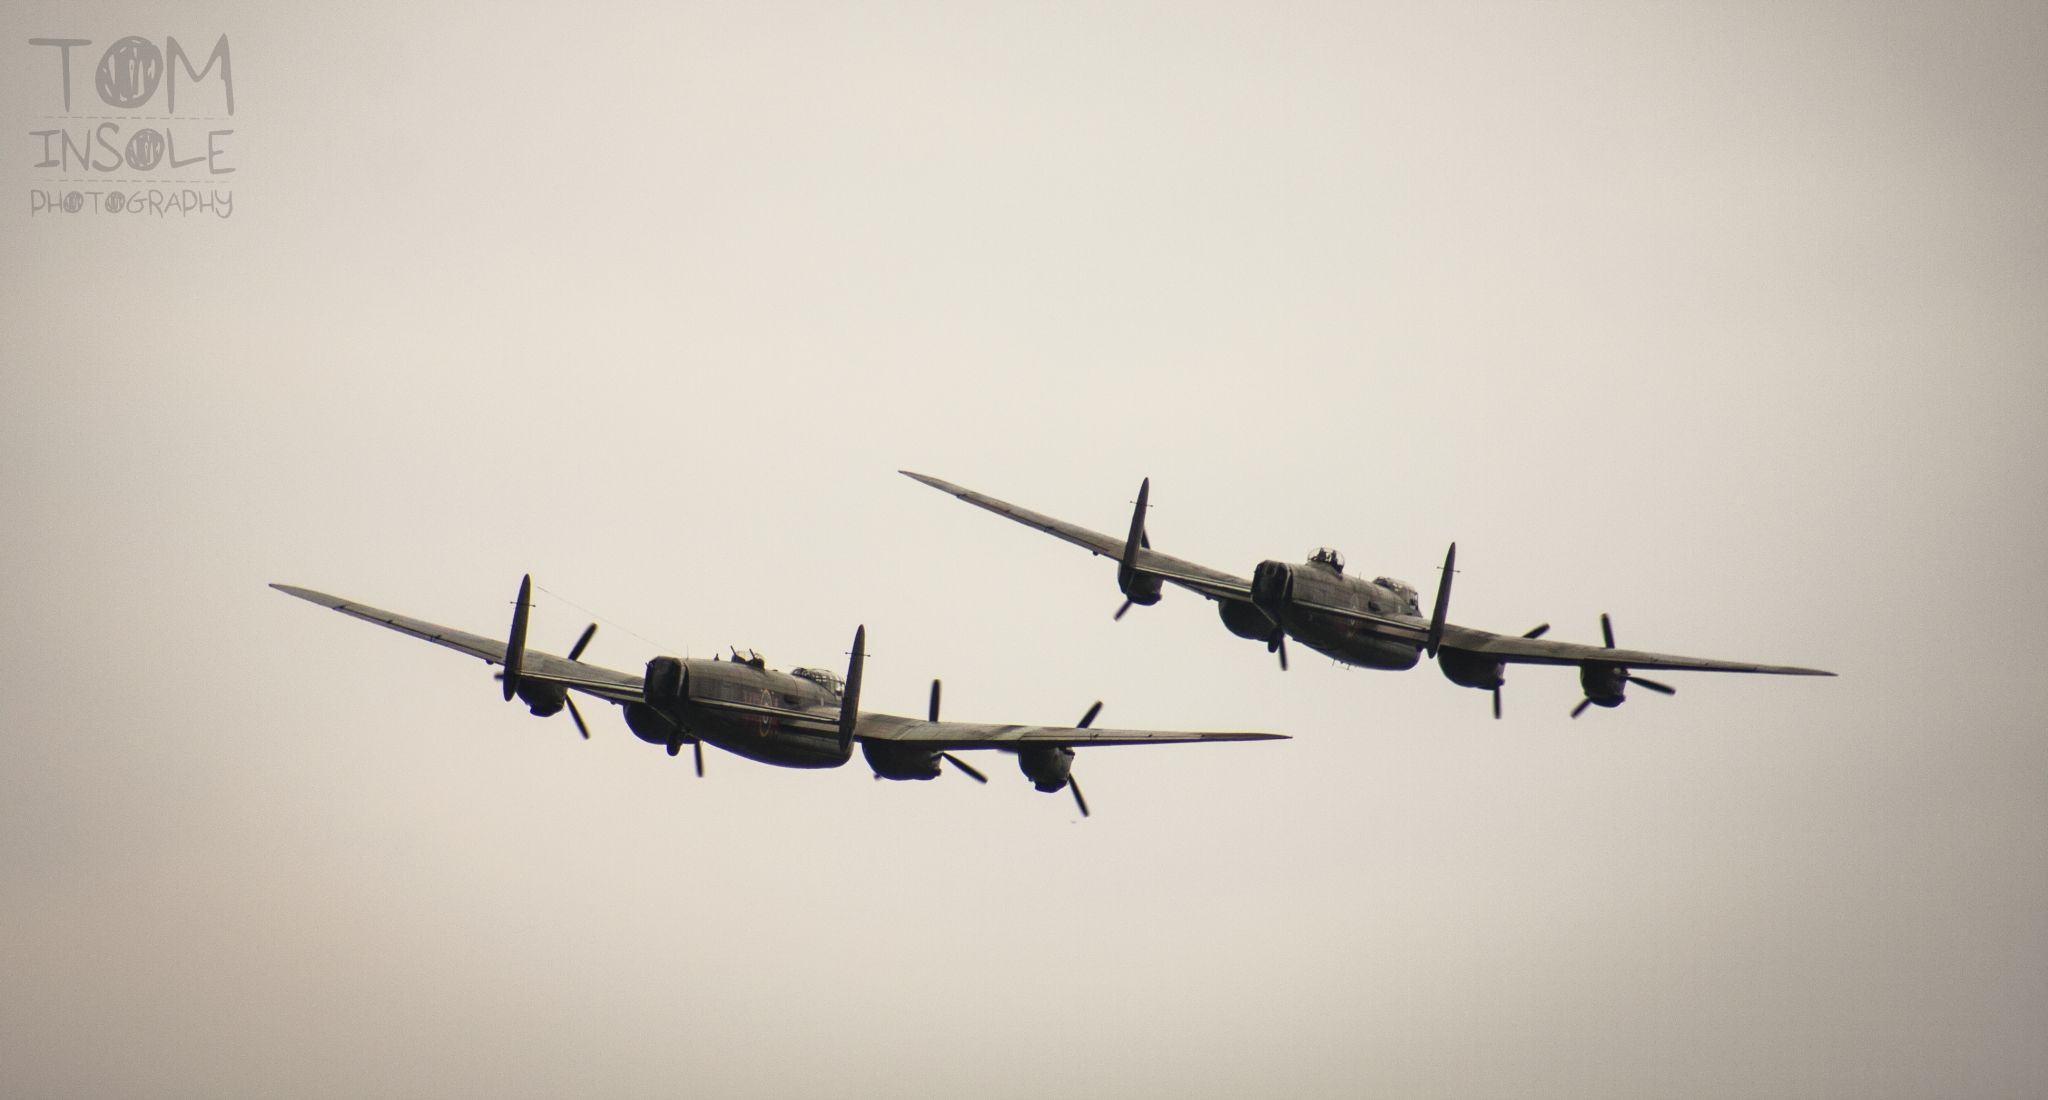 Two Lancaster Bombers by Tom Insole